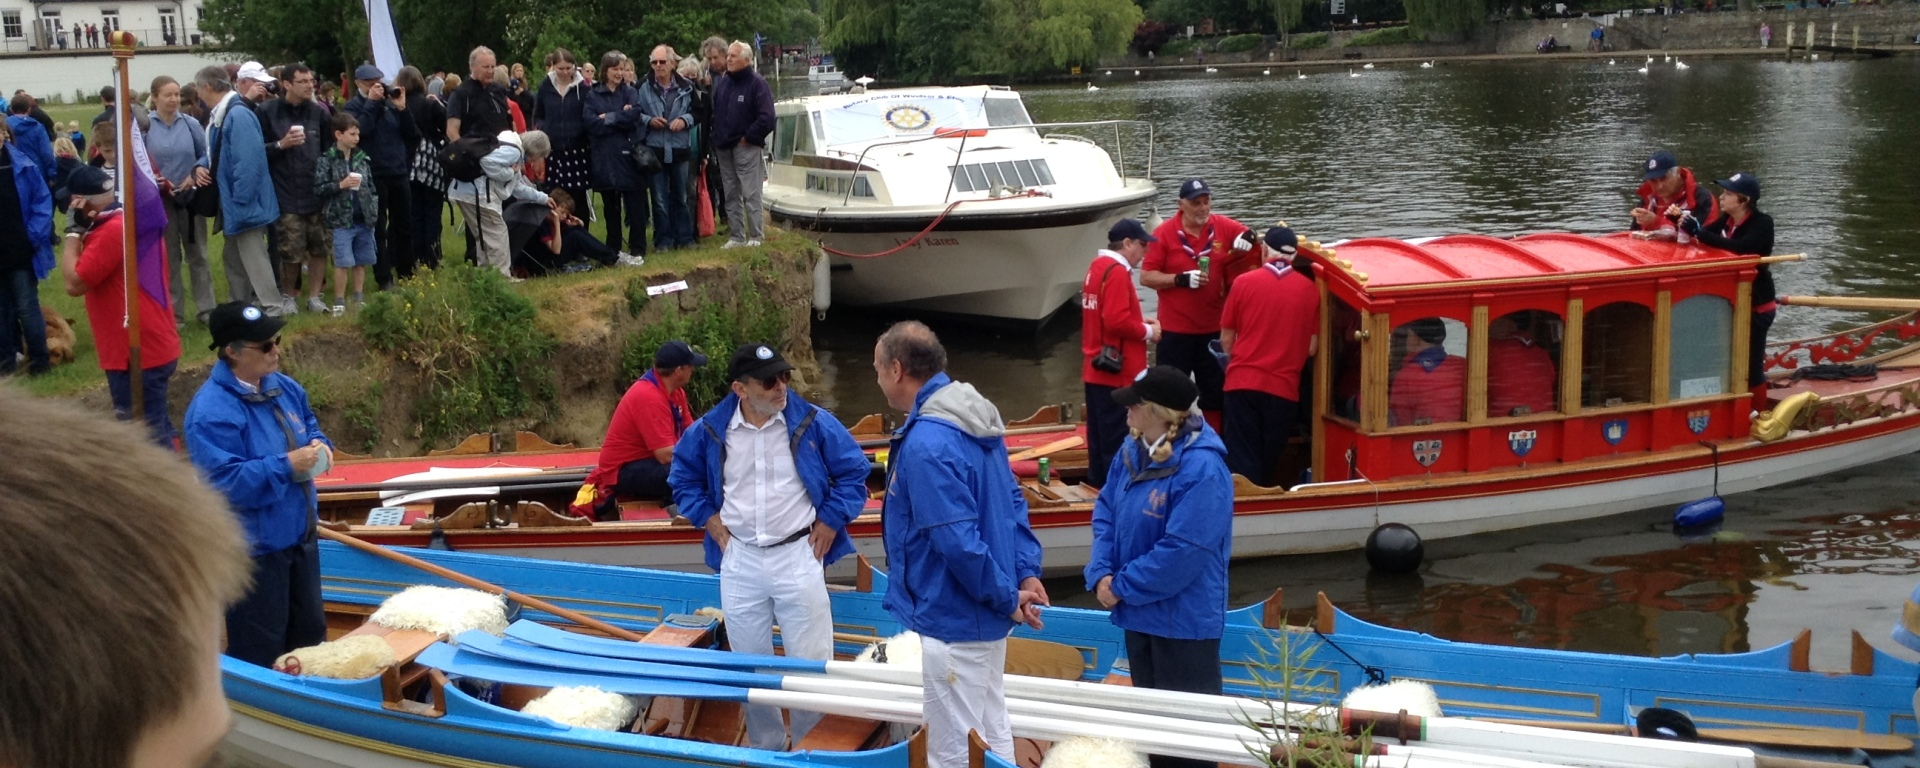 boats land at the broccas to deliver magna carta